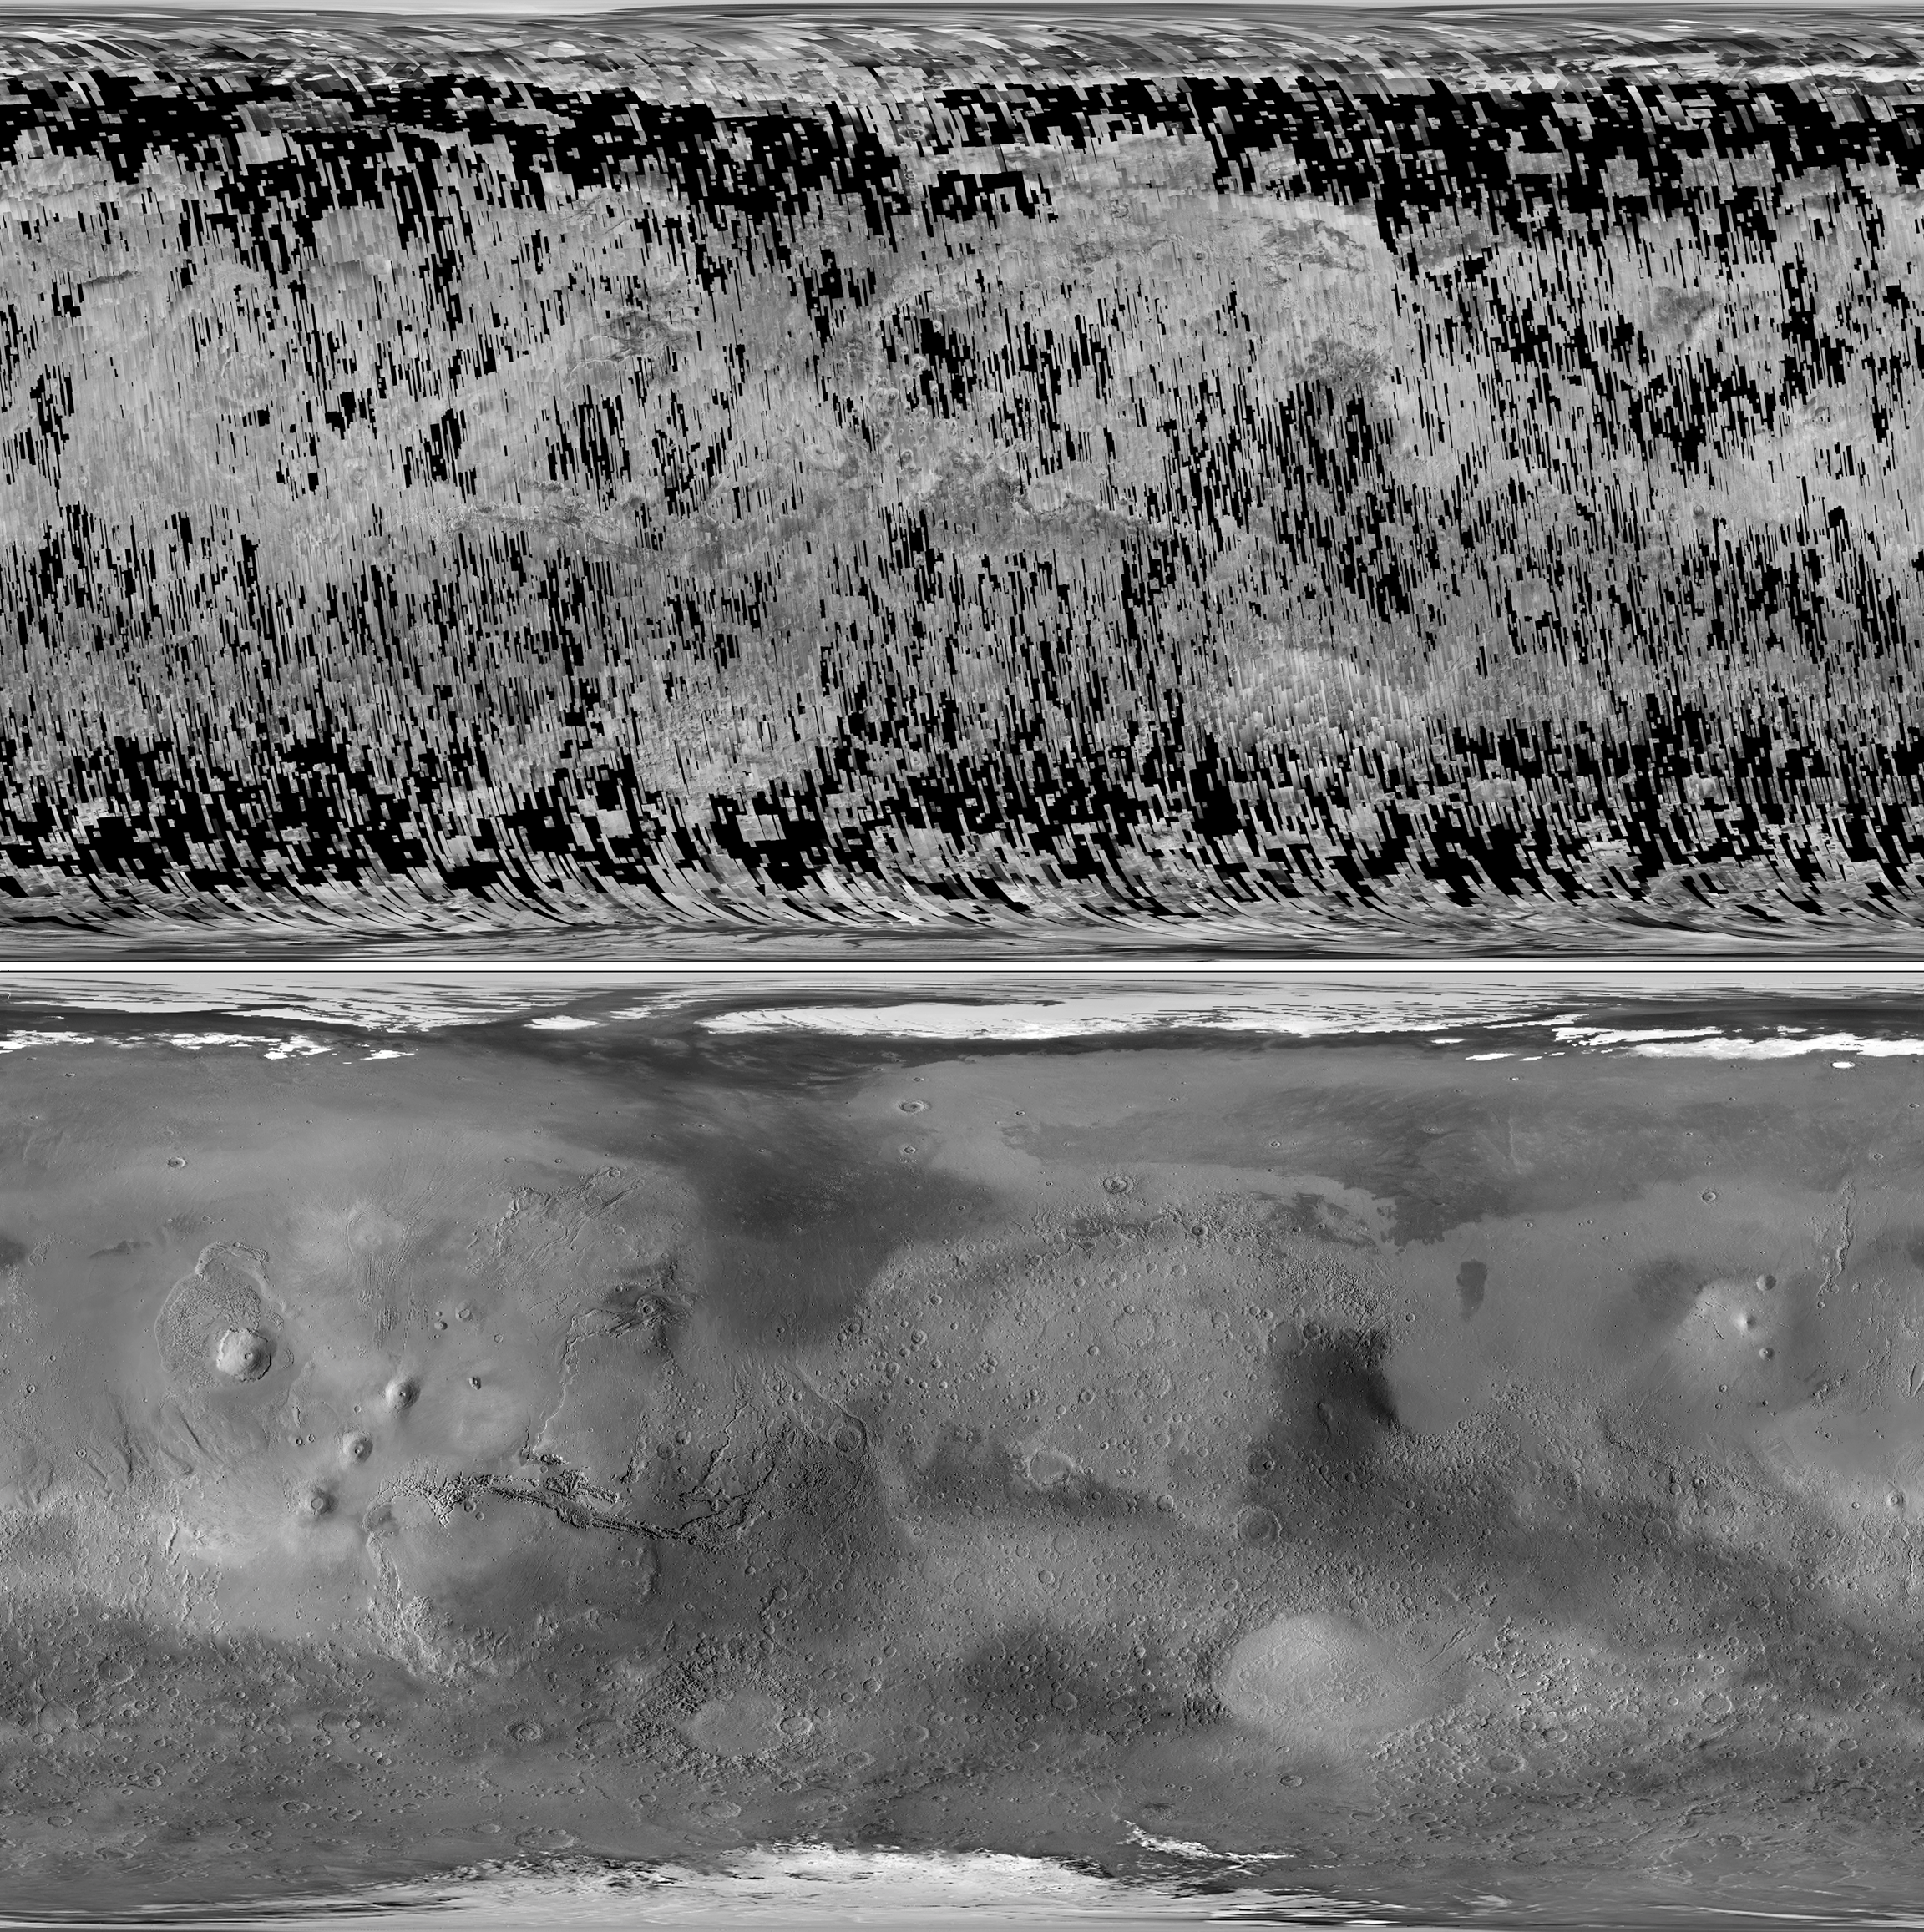 Top: Reduced resolution map of global CTX coverage as of 31 March 2012. Bottom: MGS MOC WA global mosaic overlaid upon MGS Mars Orbiter Laser Altimeter (MOLA) topography. Projection is simple cylindrical with a central longitude of 0° in both images. Image credit: NASA/JPL-Caltech/Malin Space Science Systems.